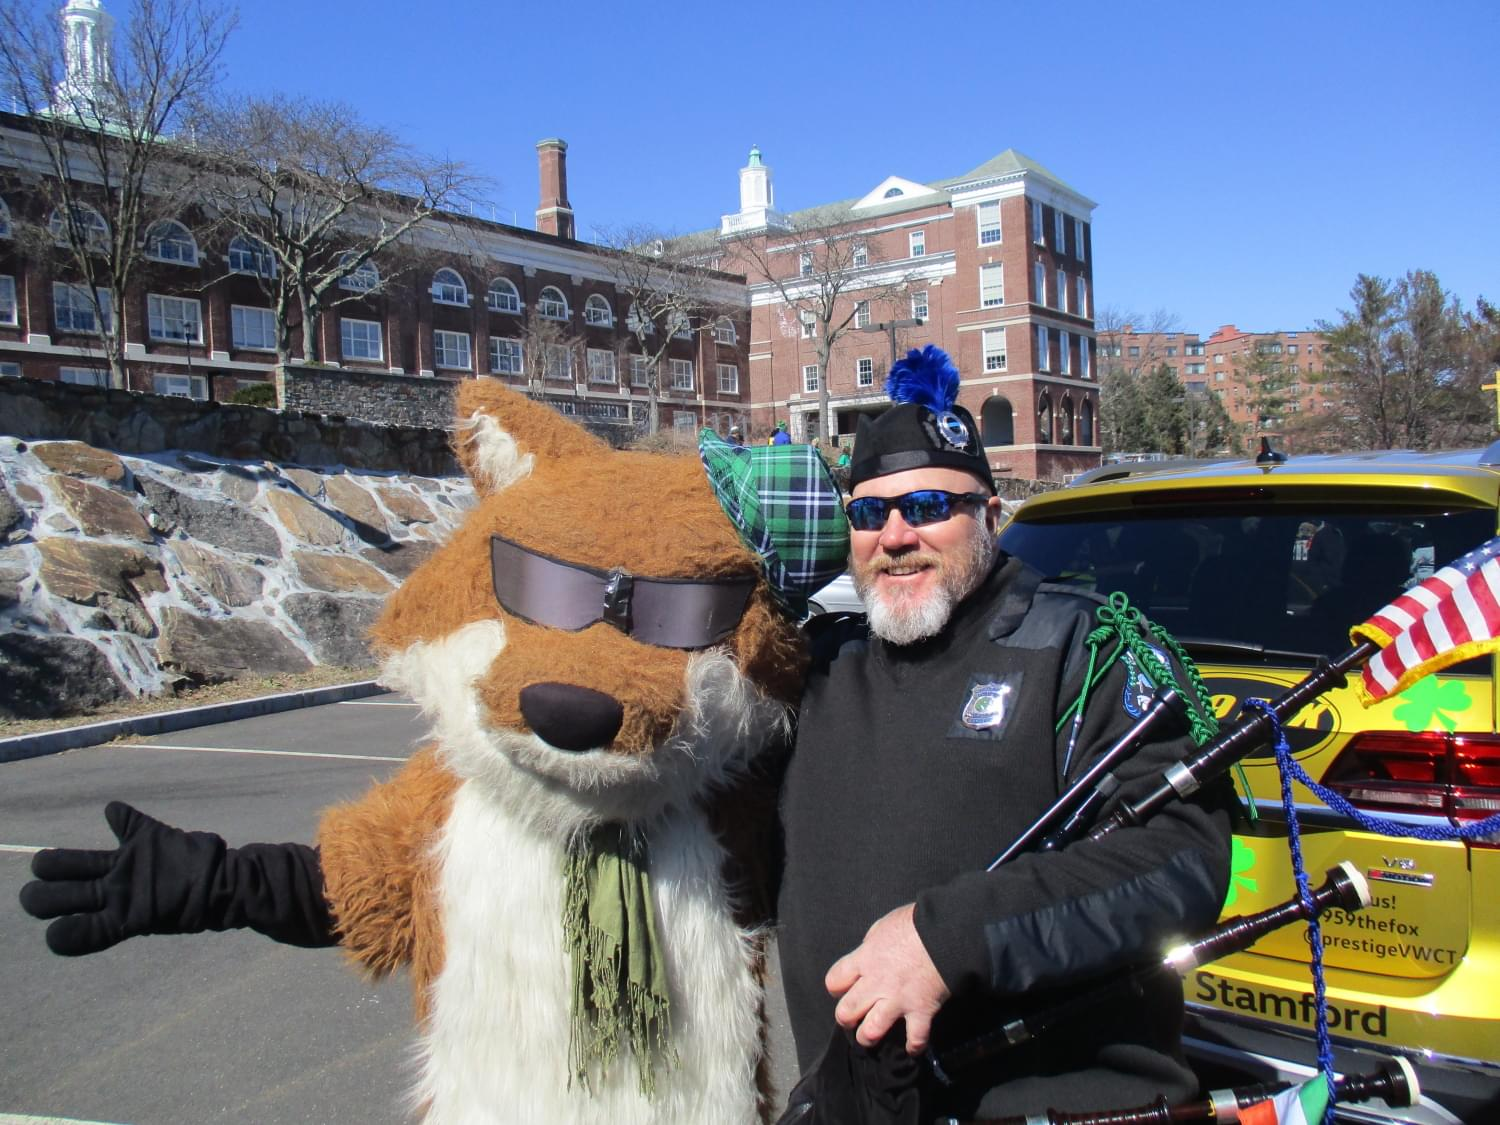 Greenwich St Patrick's Parade 2018